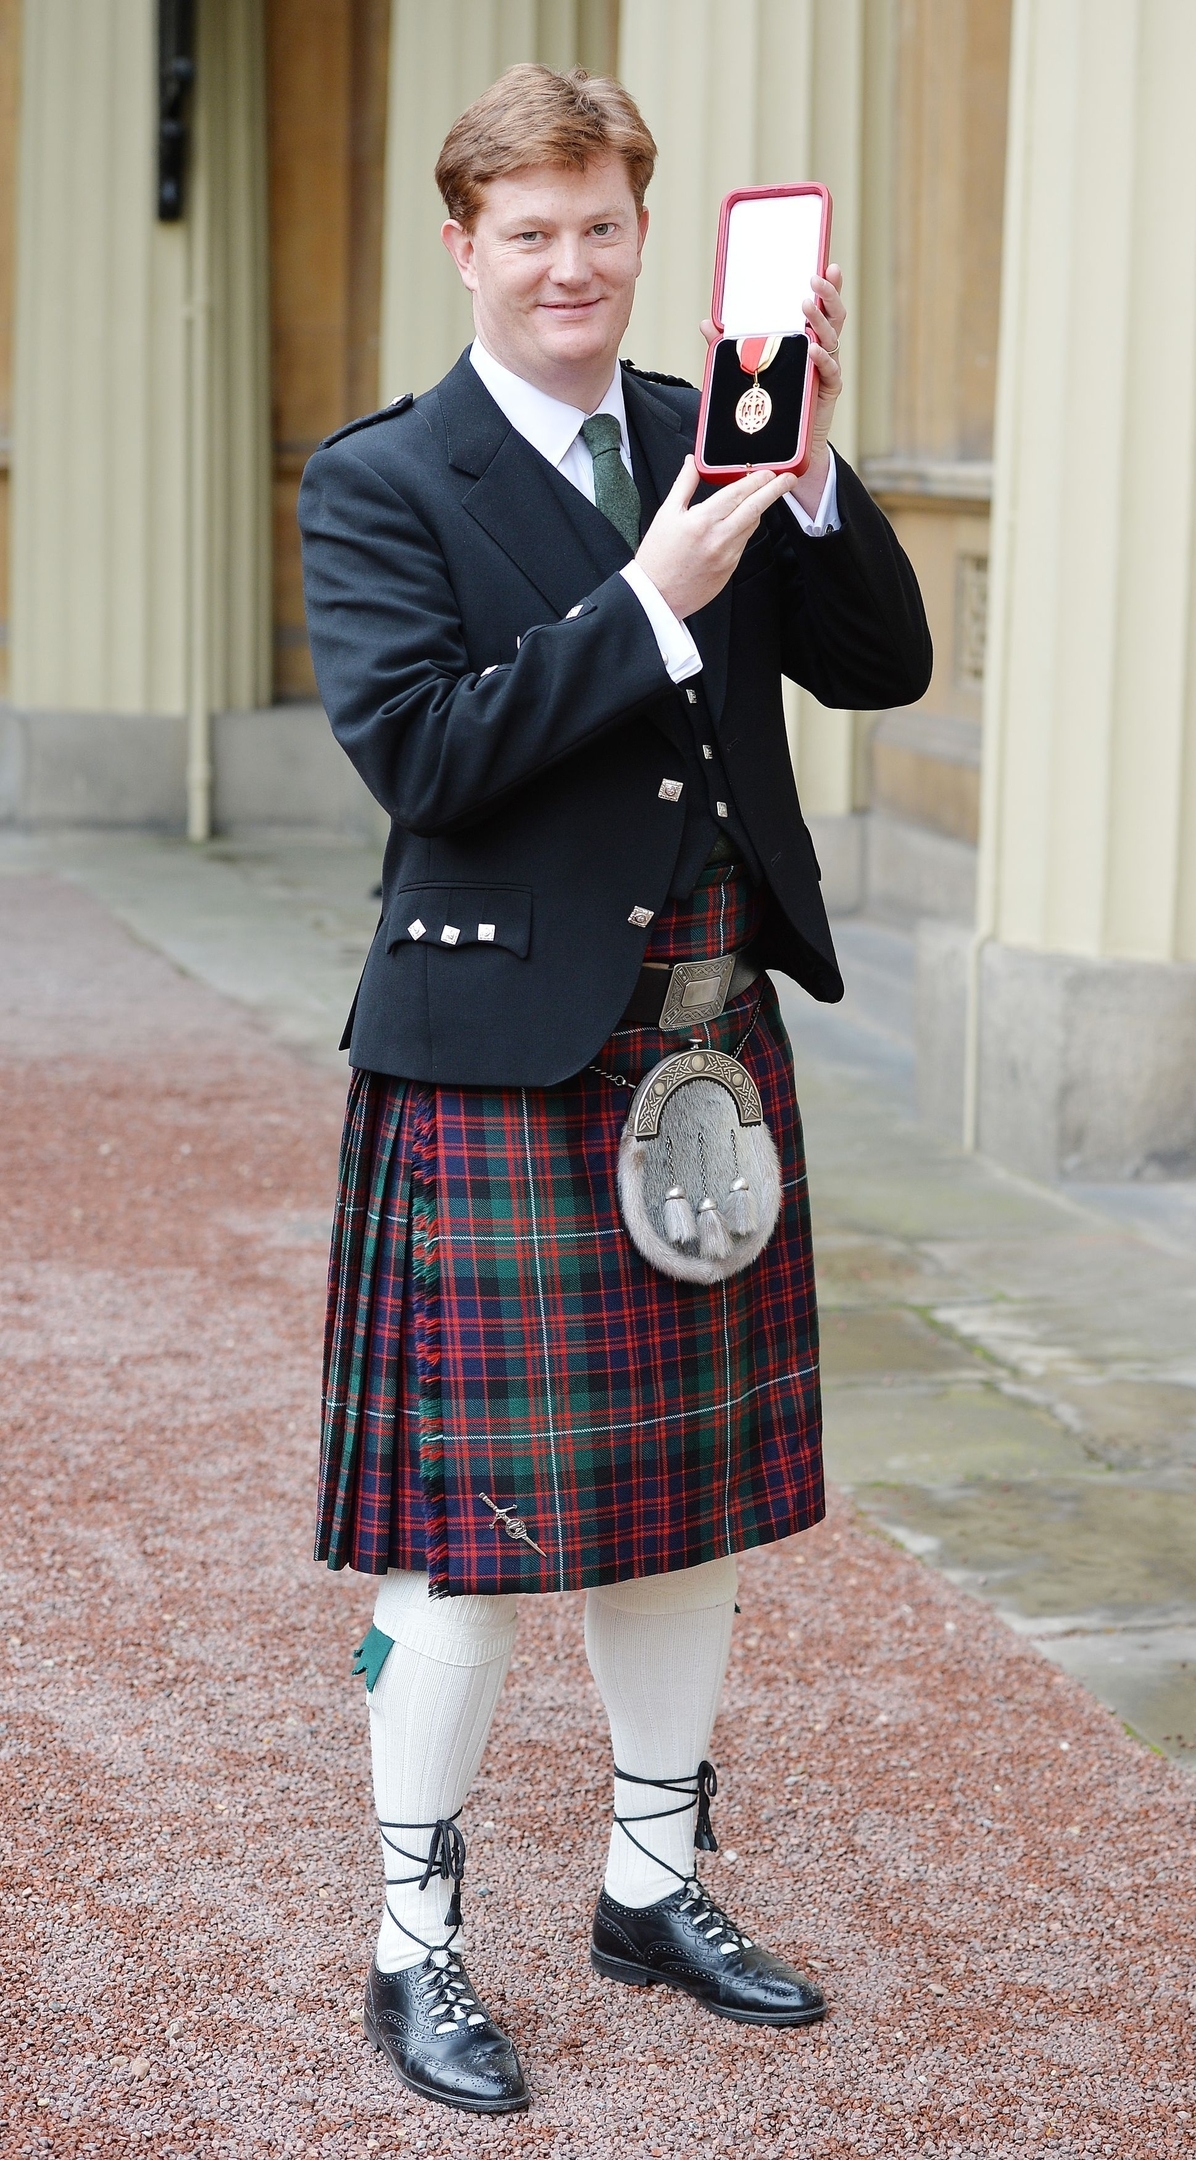 Sir Daniel Alexander holds his insignia of Knighthood which was presented by the Prince of Wales at the Investiture ceremony in Buckingham Palace, London.